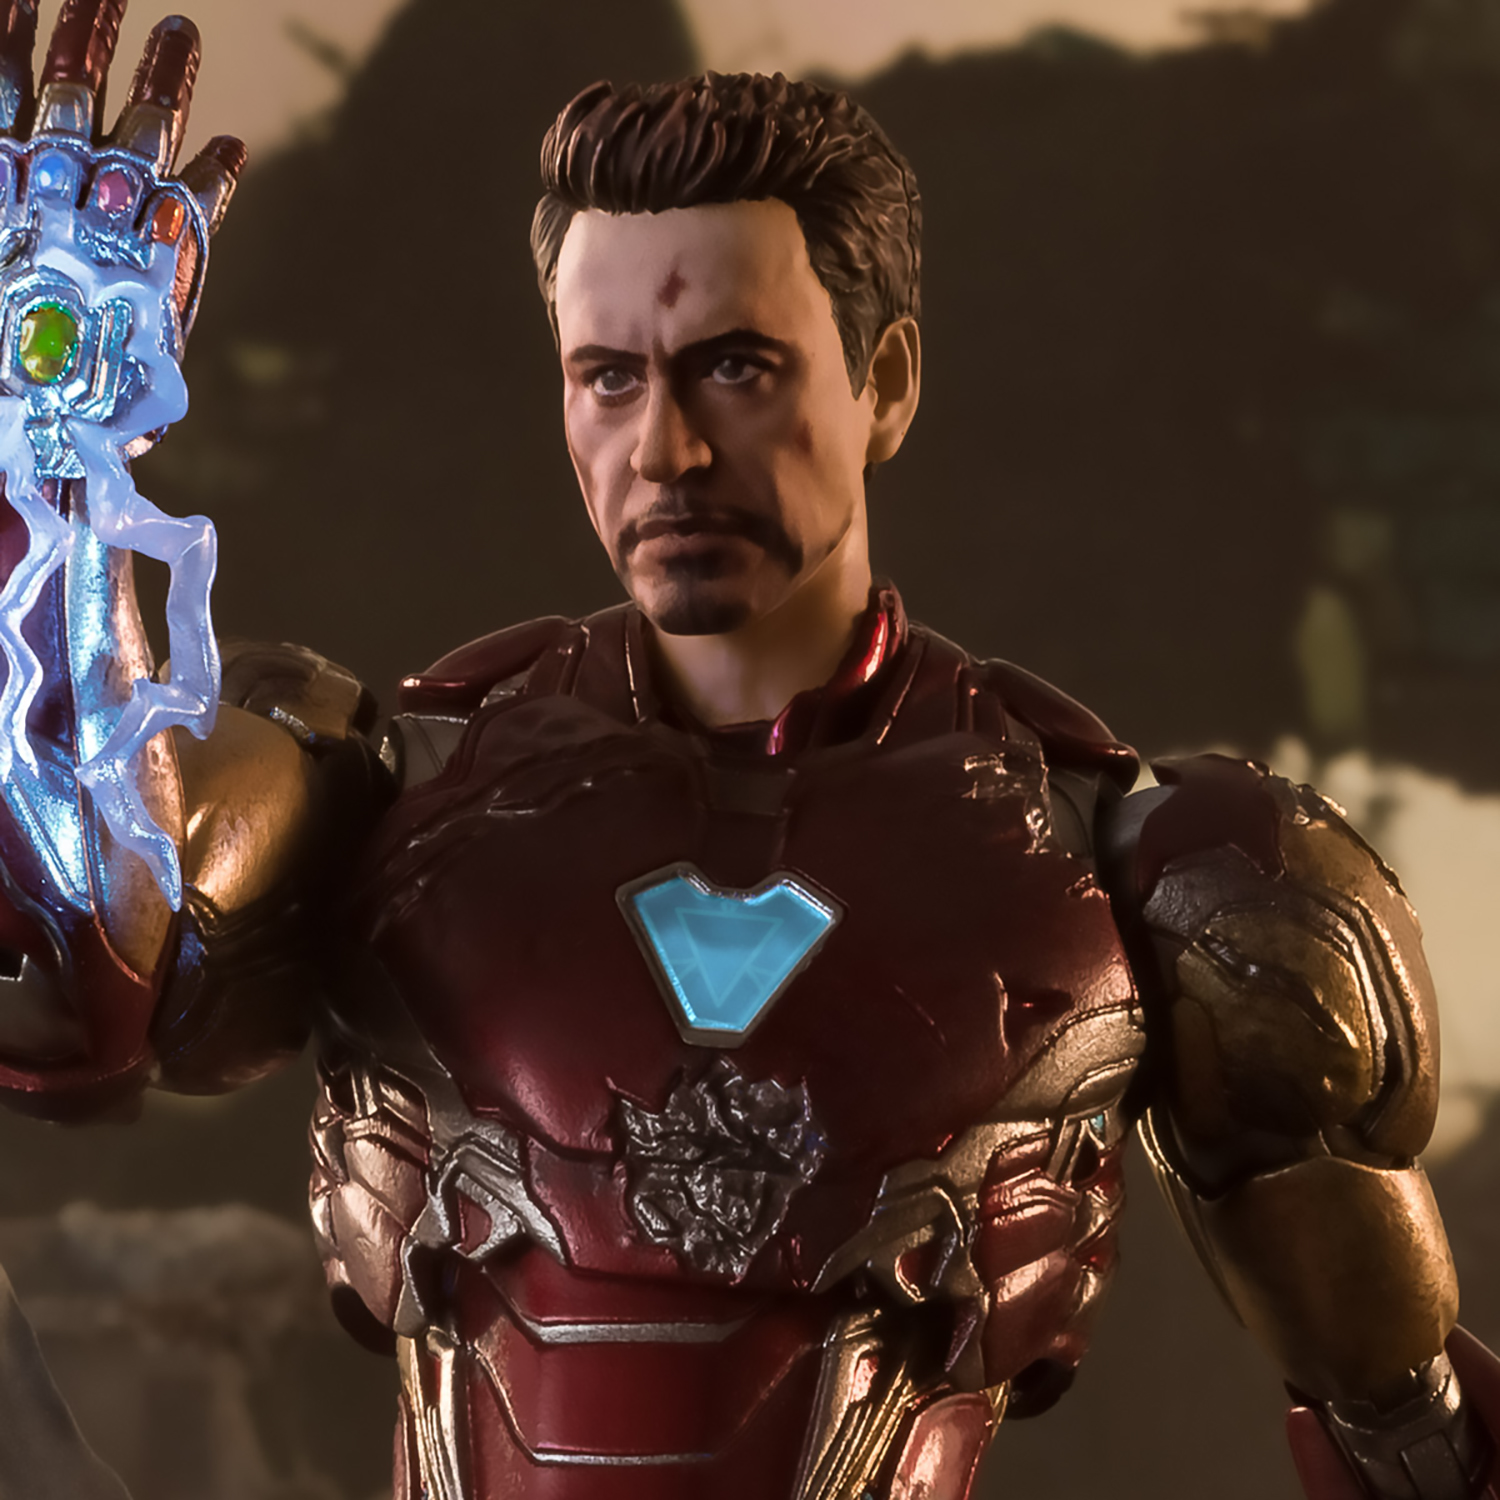 Фигурка S.H.Figuarts Avengers: Endgame Ironman Mark 85 I am Iron Man Edition 604972